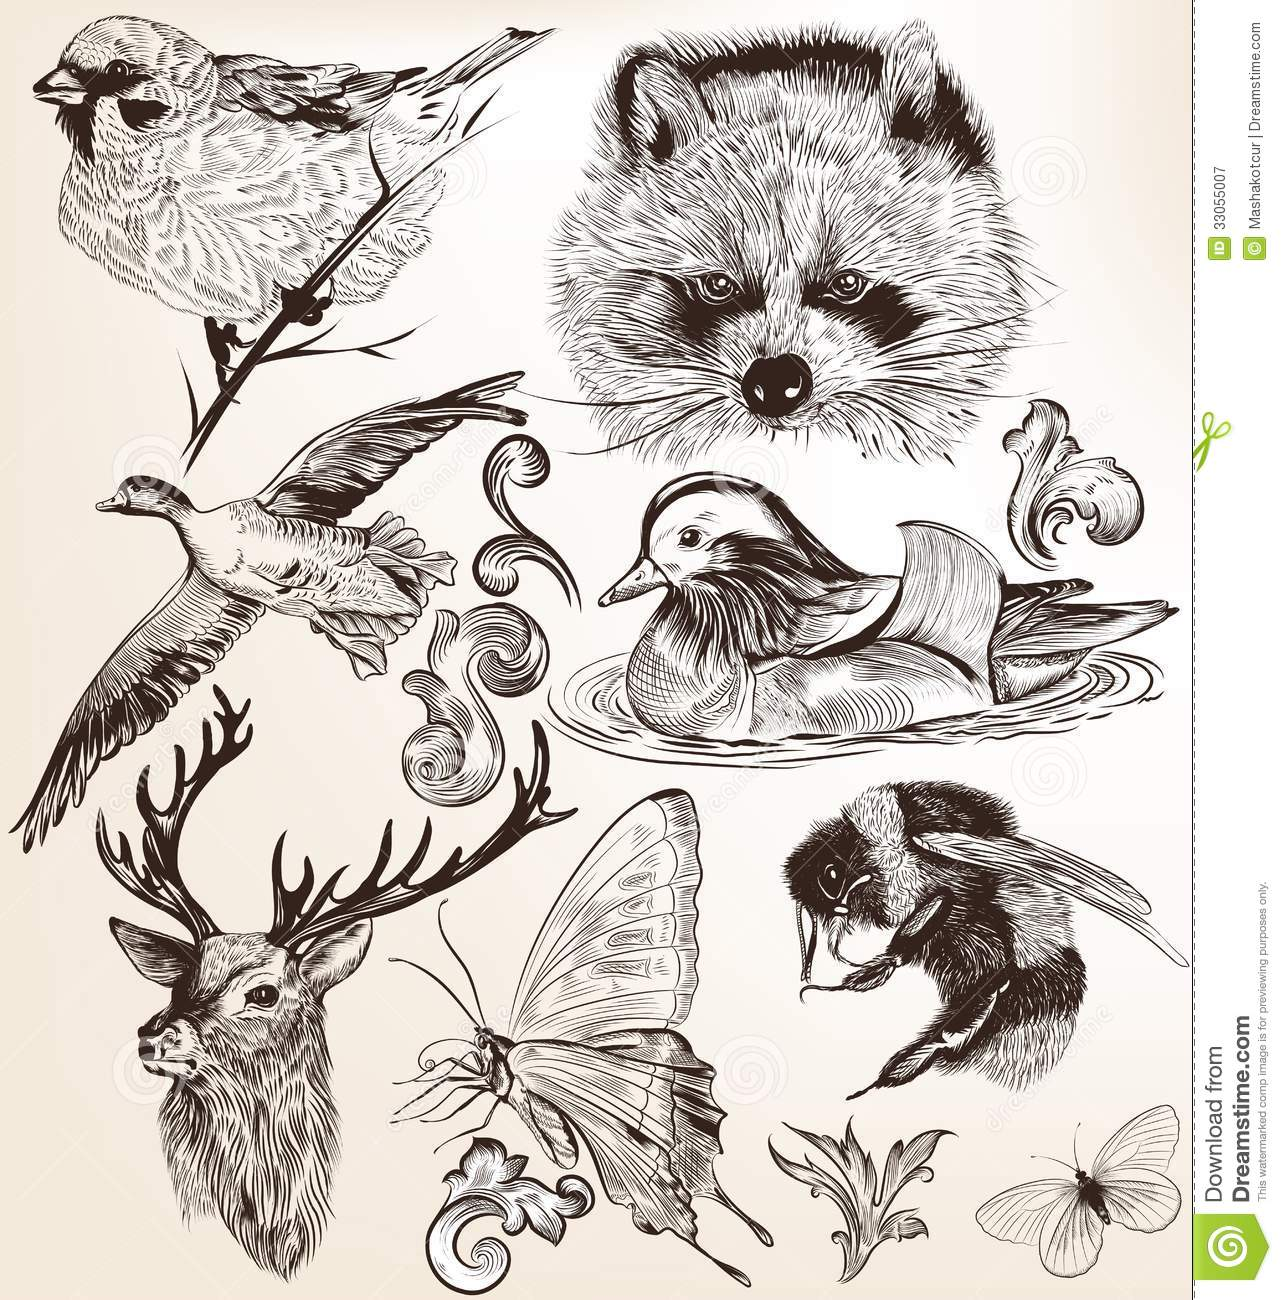 Detailed Line Drawings Of Animals : Vector set of detailed hand drawn animals in vintage style